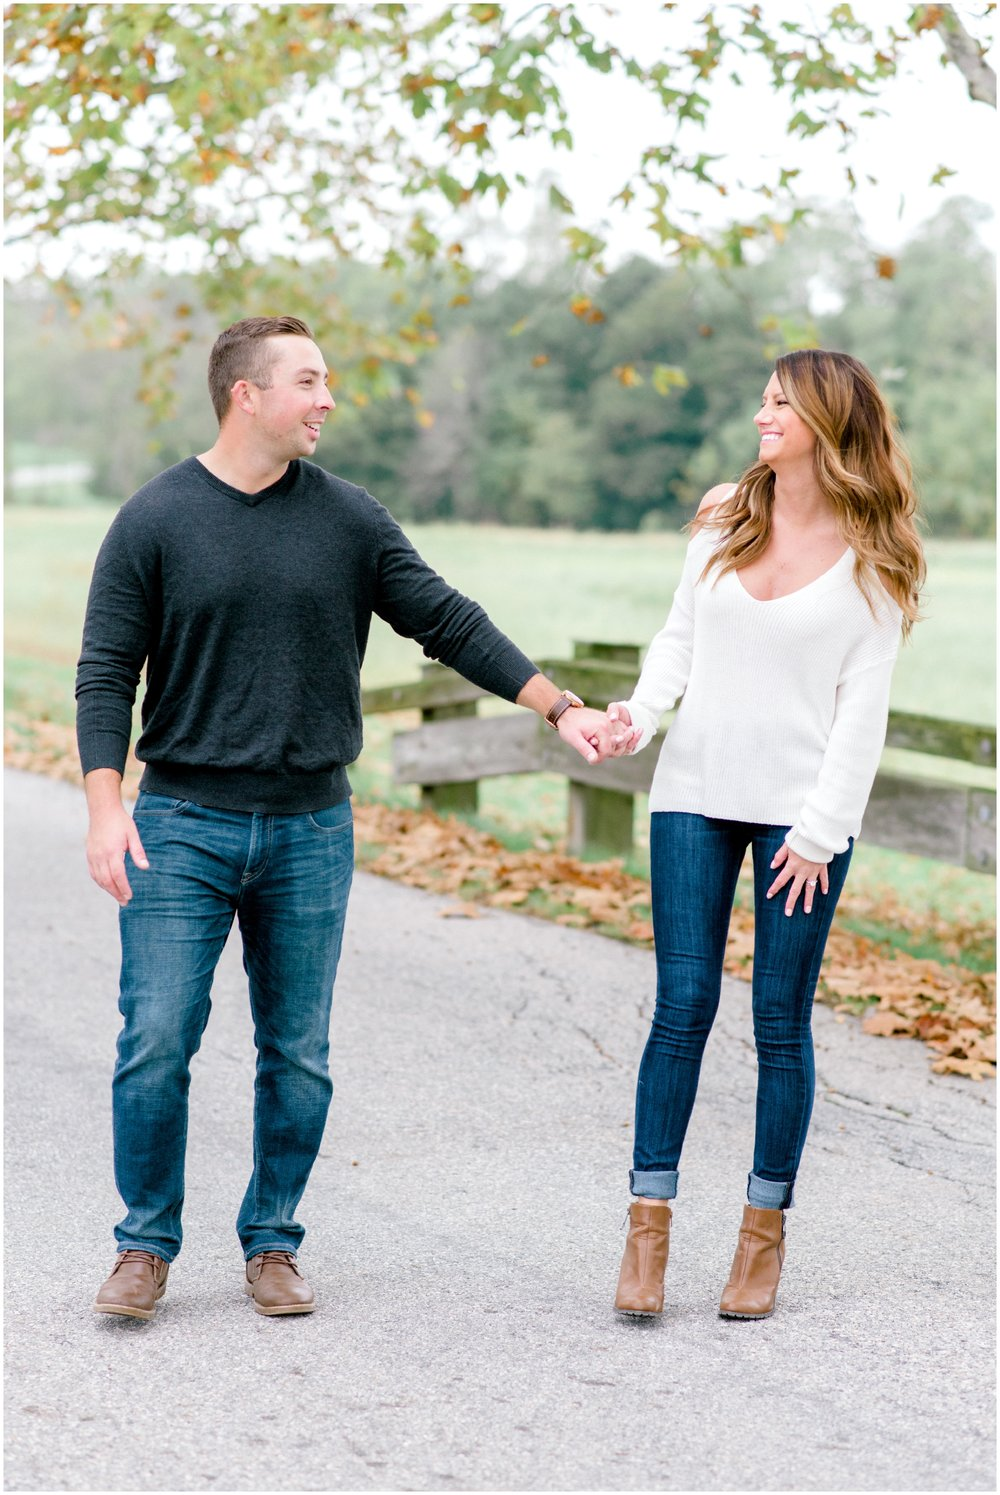 Fall Springton Manor Farm Engagement Session - Krista Brackin Photography_0030.jpg